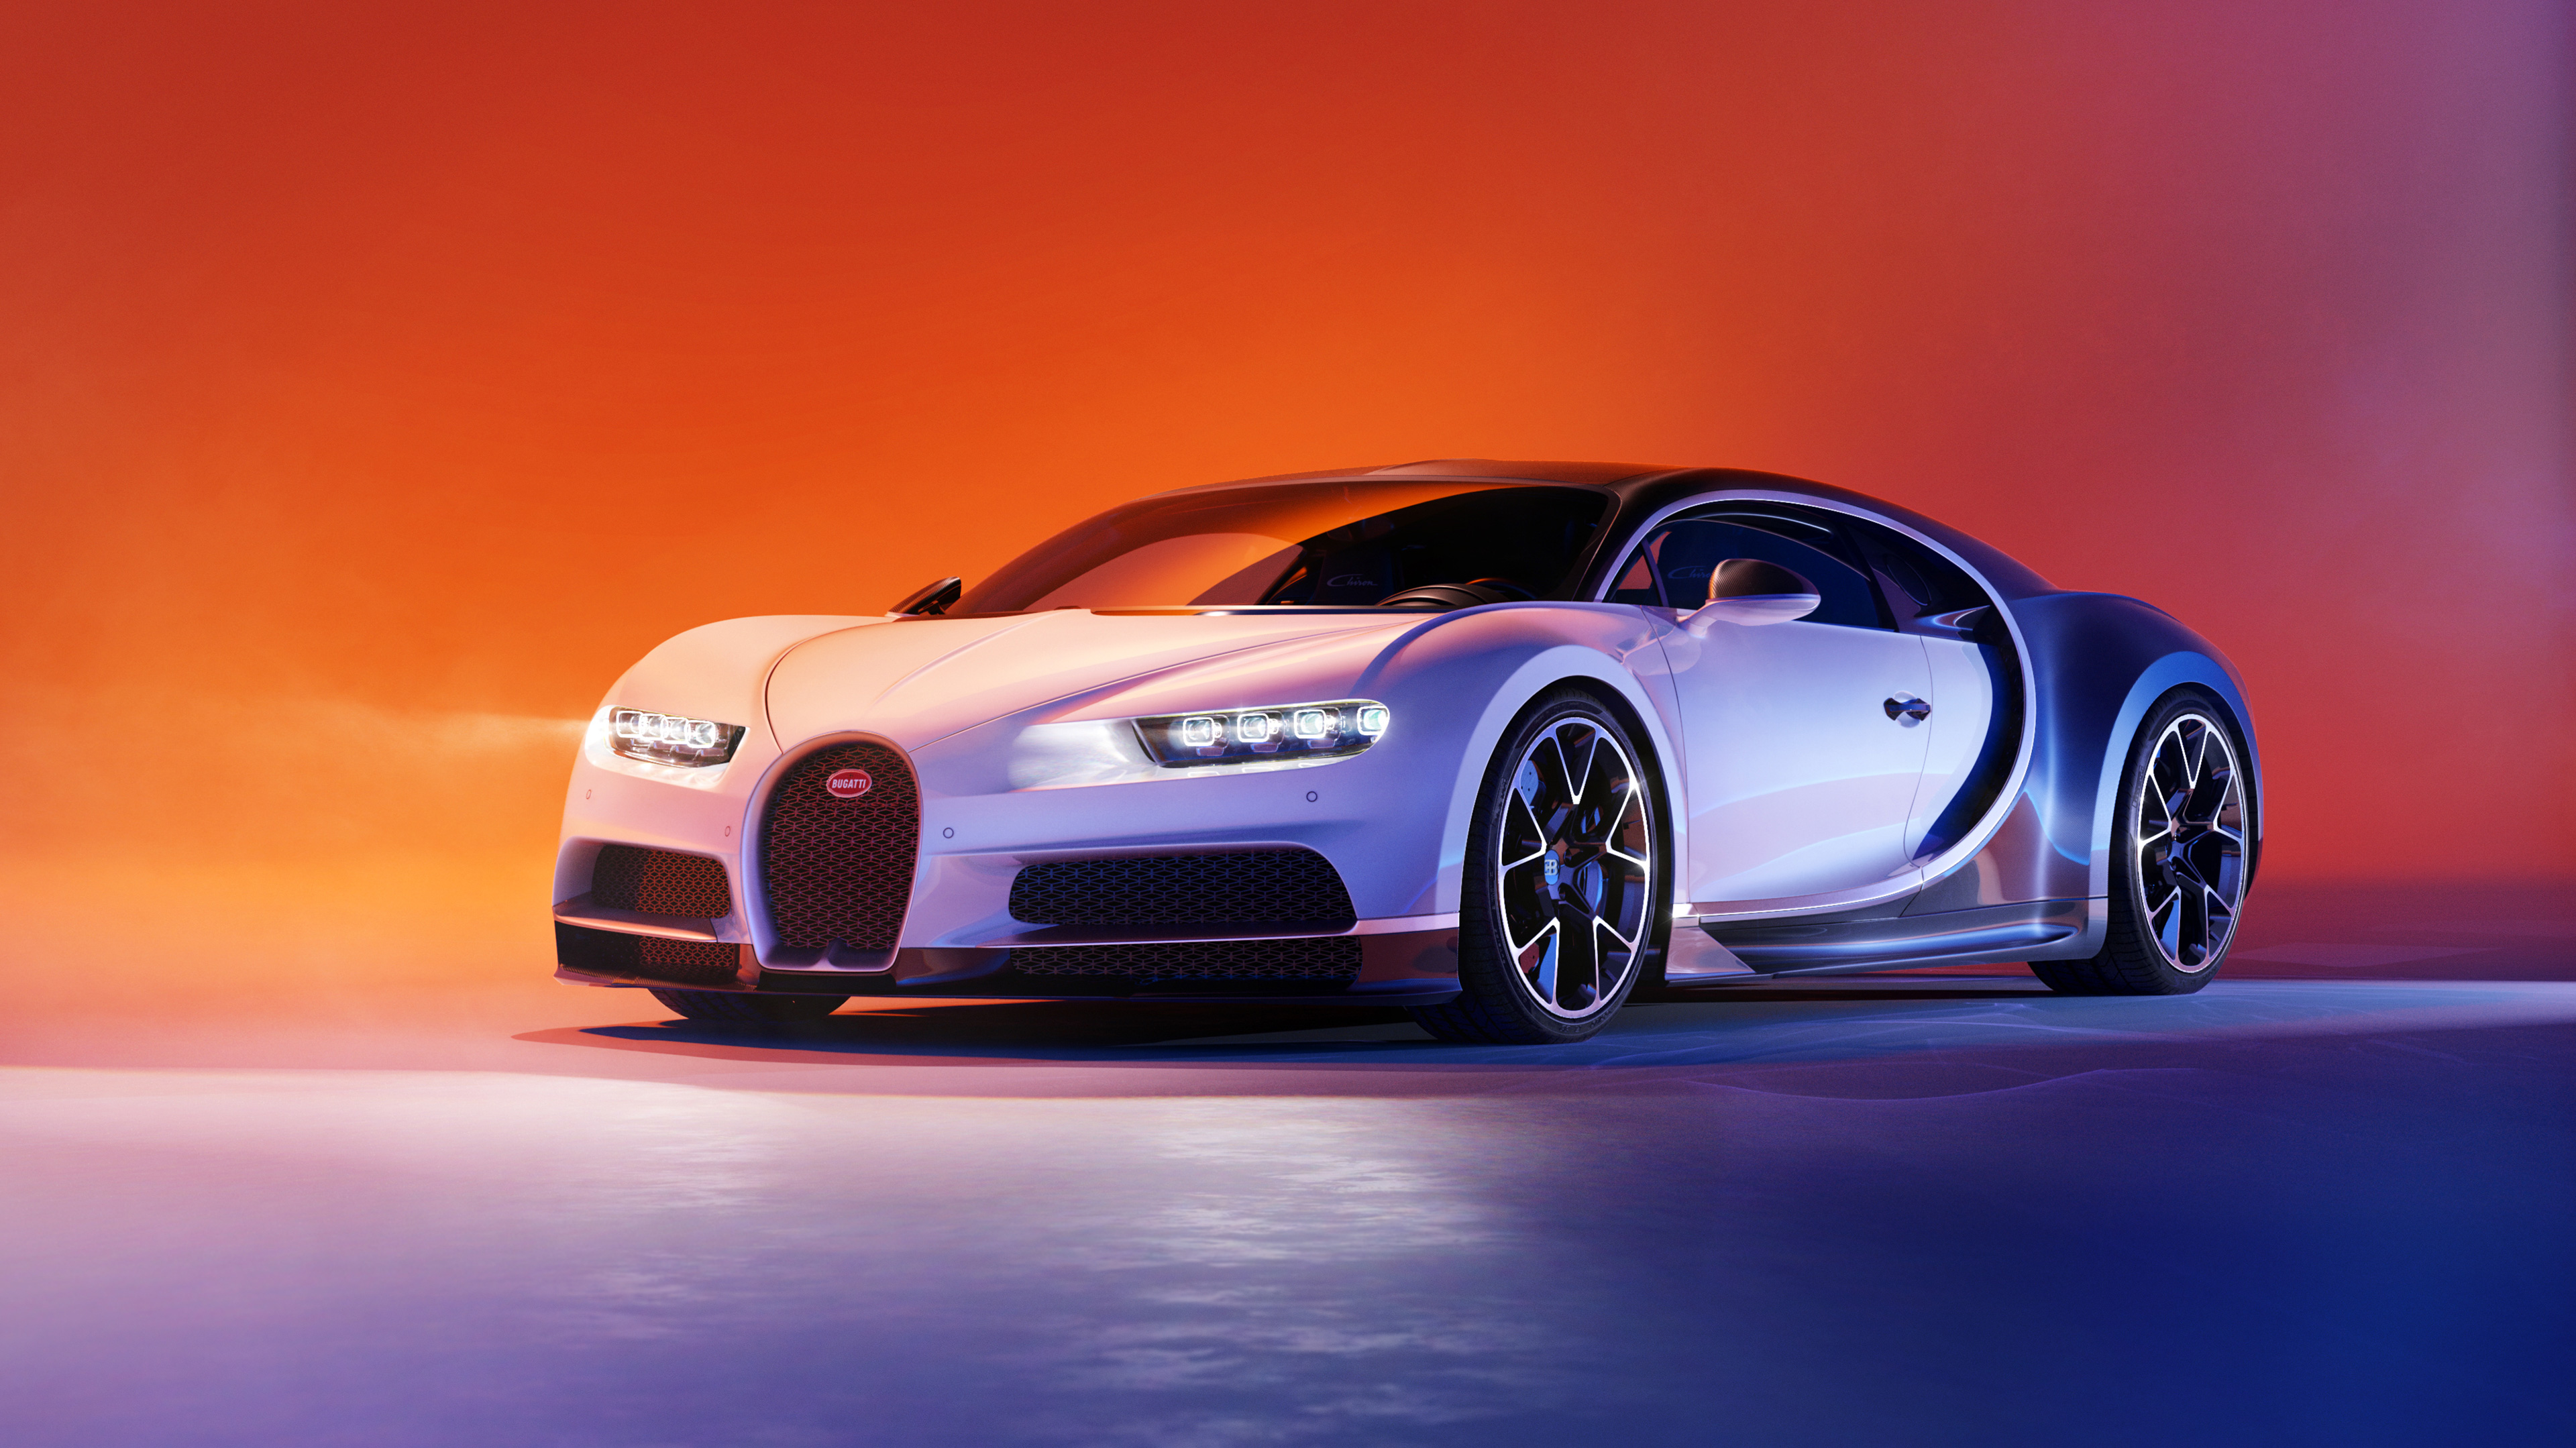 Two Tone Bugatti Chiron 4K, HD Cars, 4k Wallpapers, Images ...